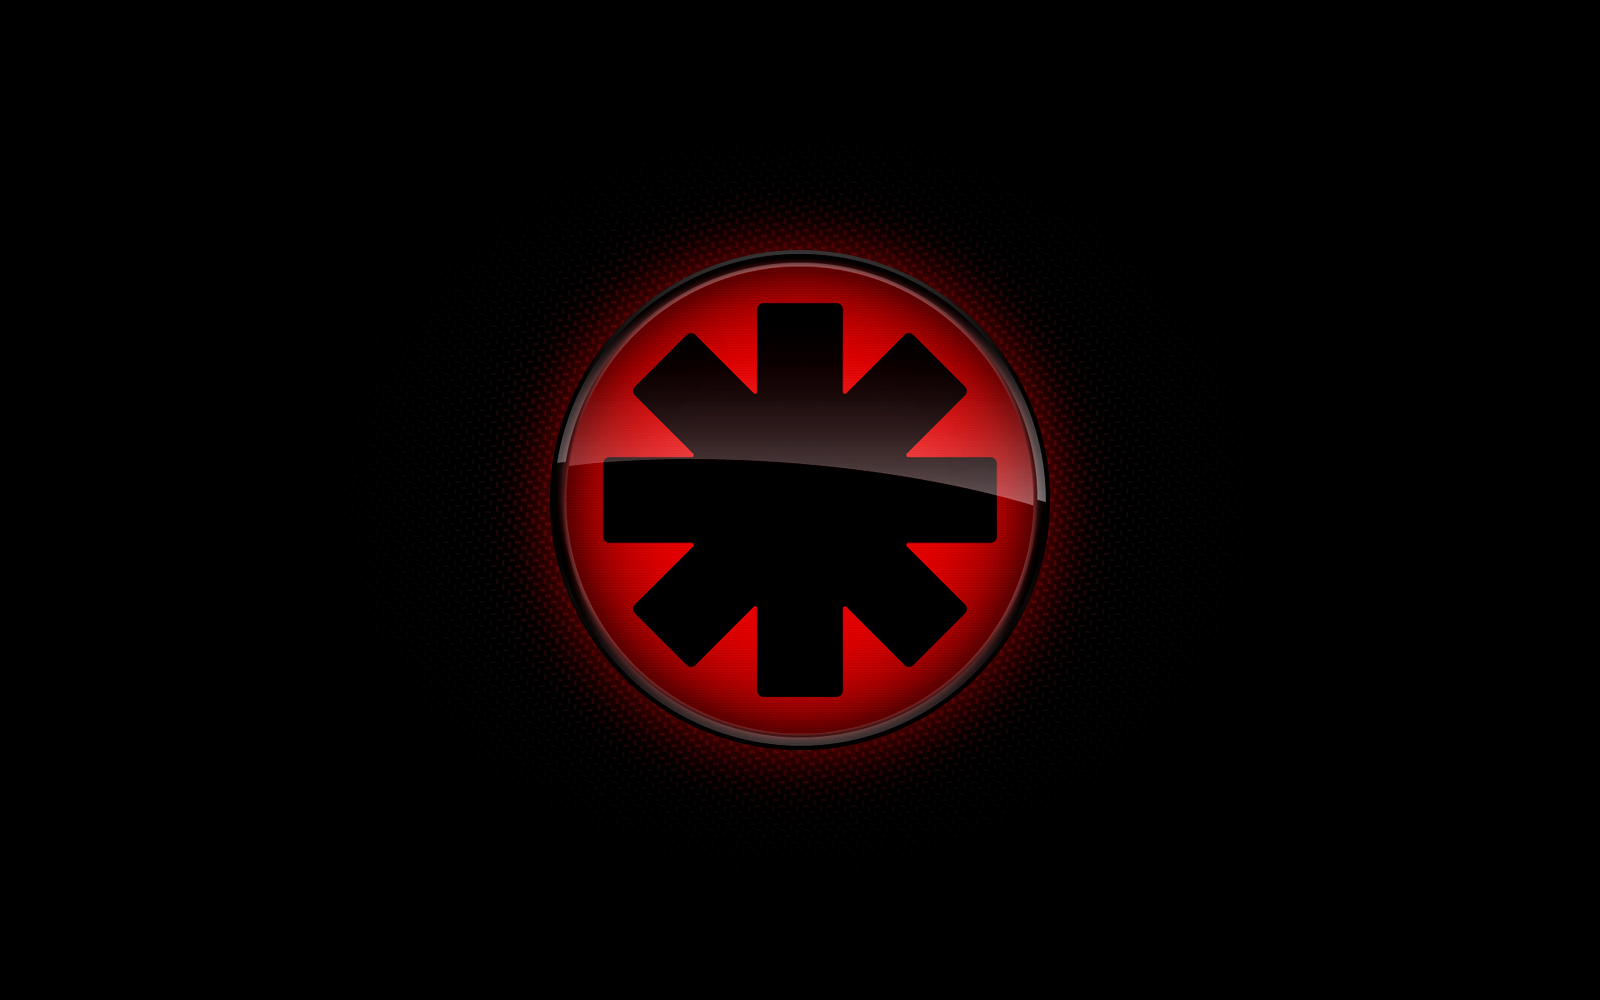 red hot chili peppers logo music band hd wallpapers hd